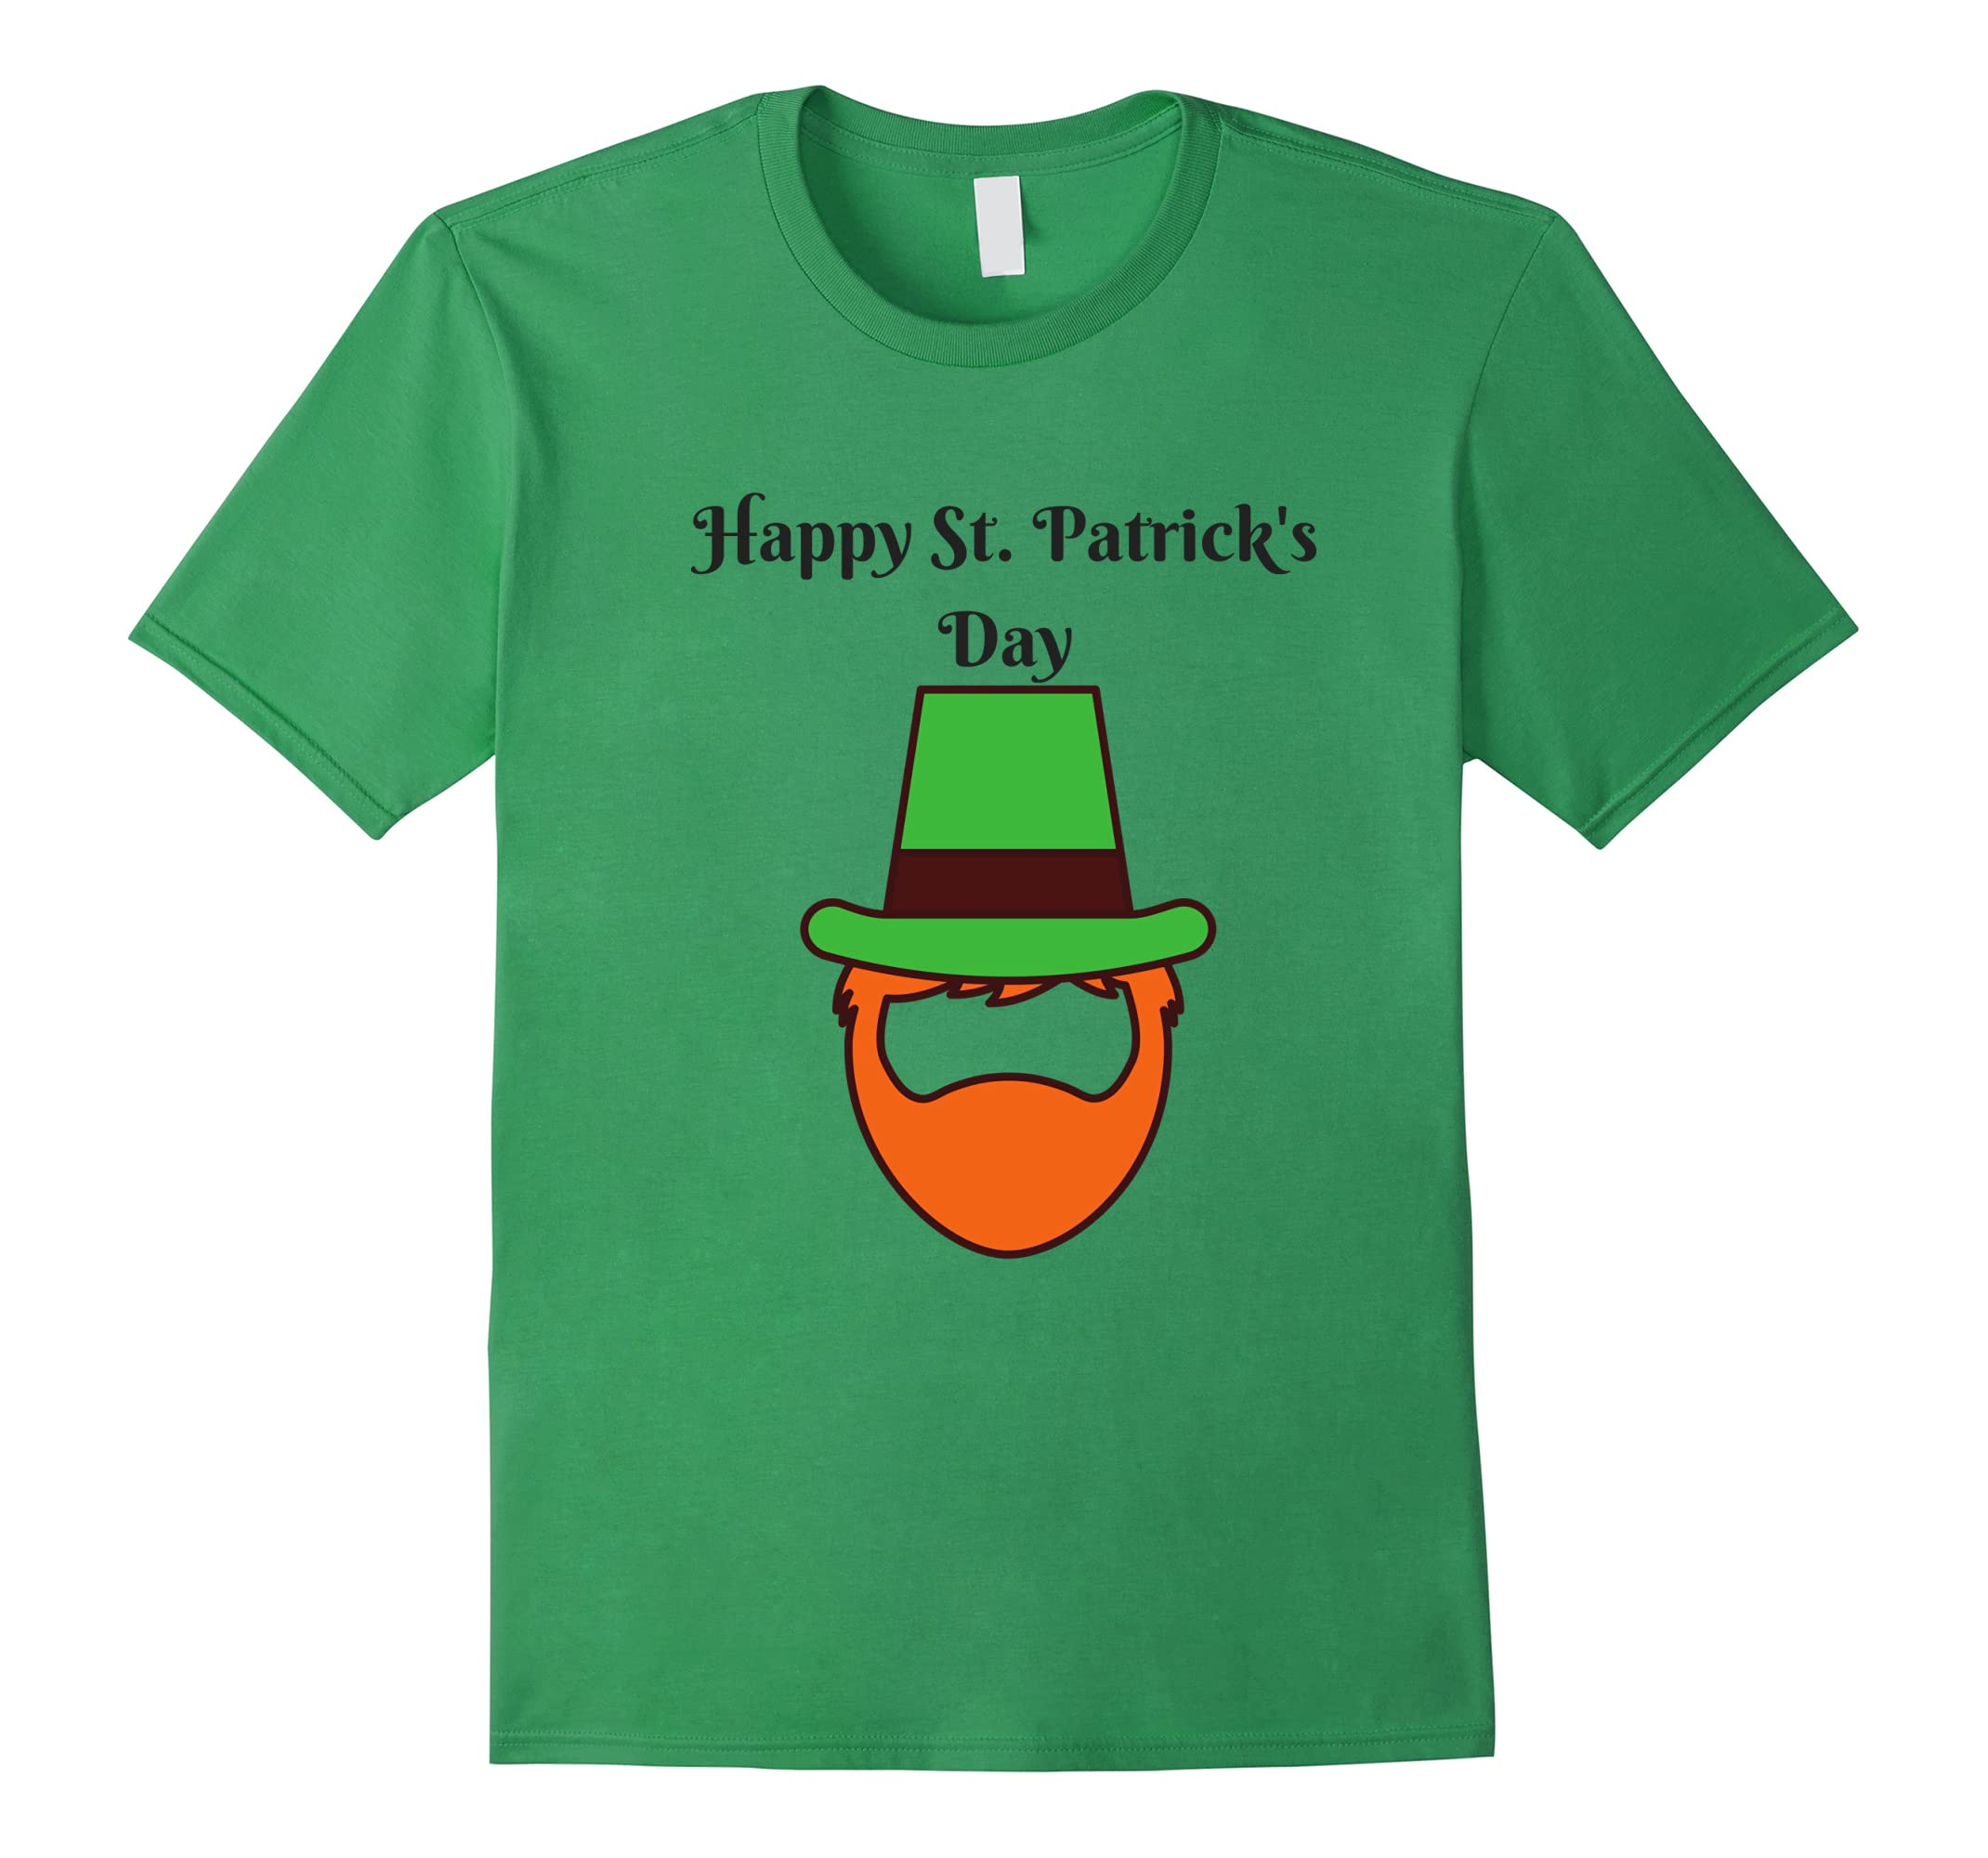 St. Patrick s Day Beard-ah my shirt one gift – Ahmyshirt 5ce3be51bfdb